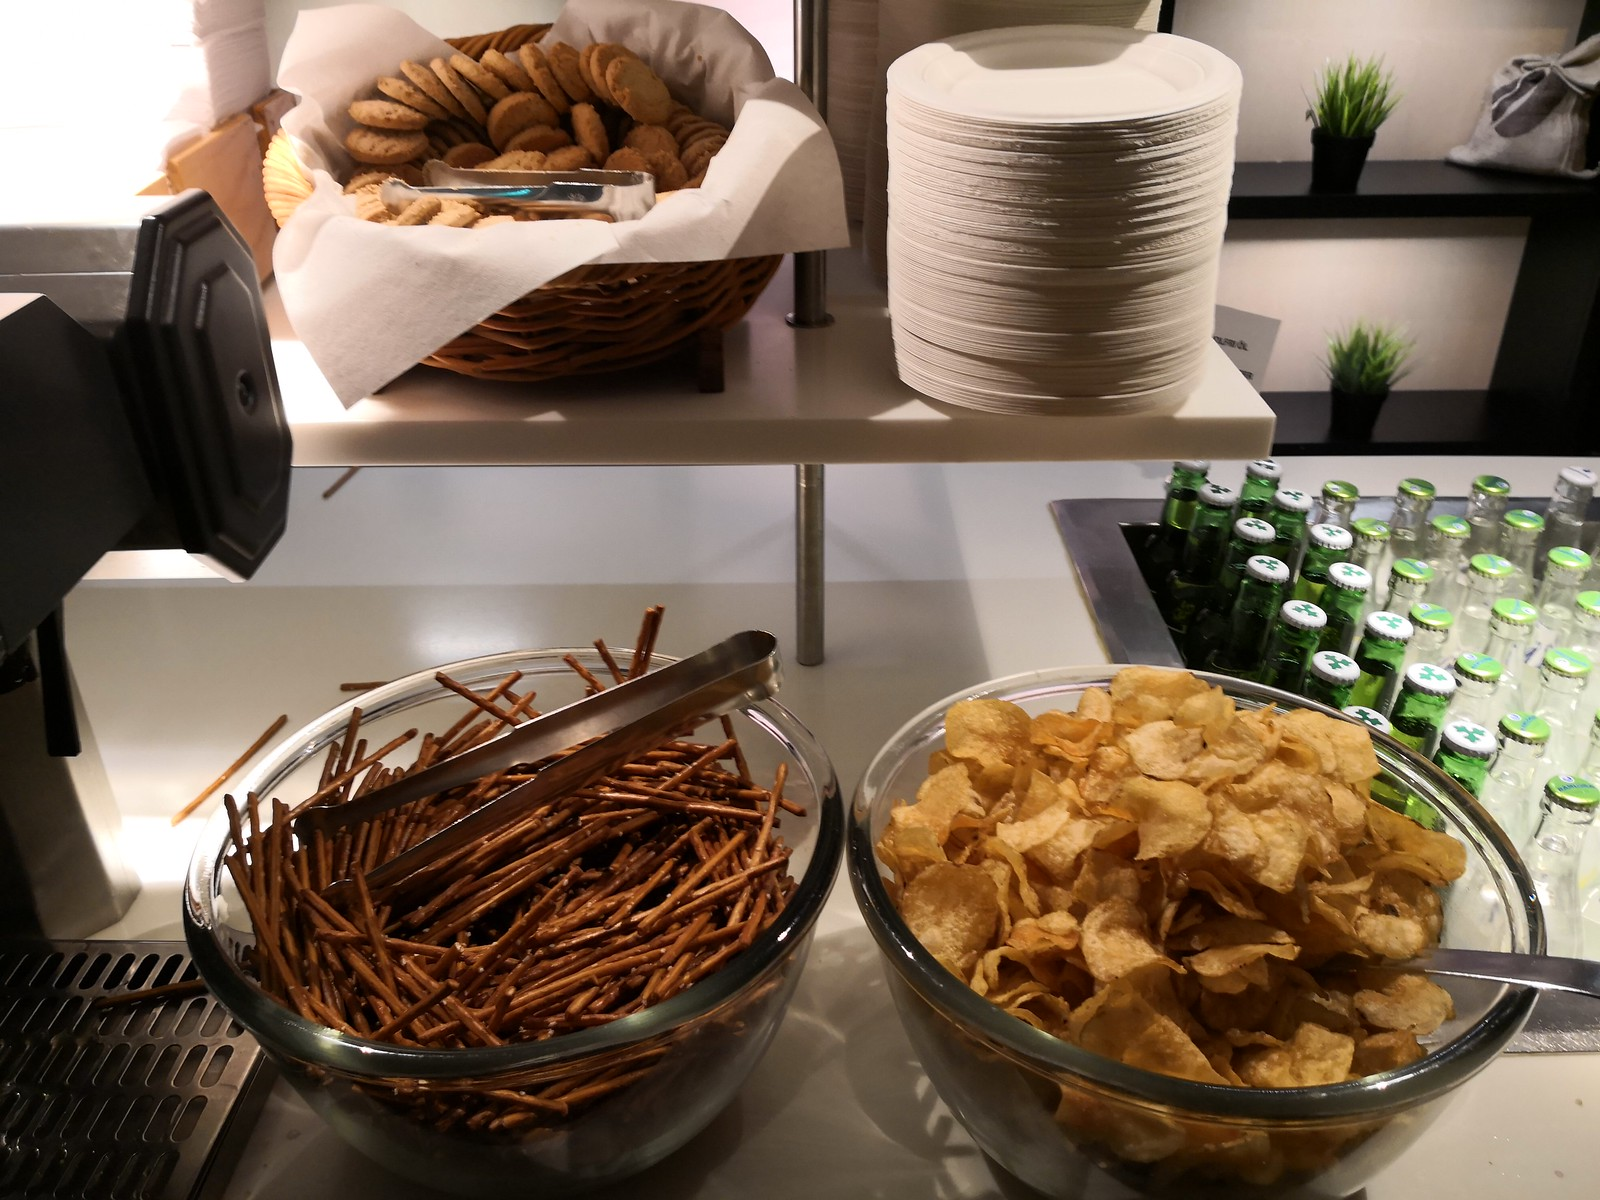 Cookies, pretzels and chips